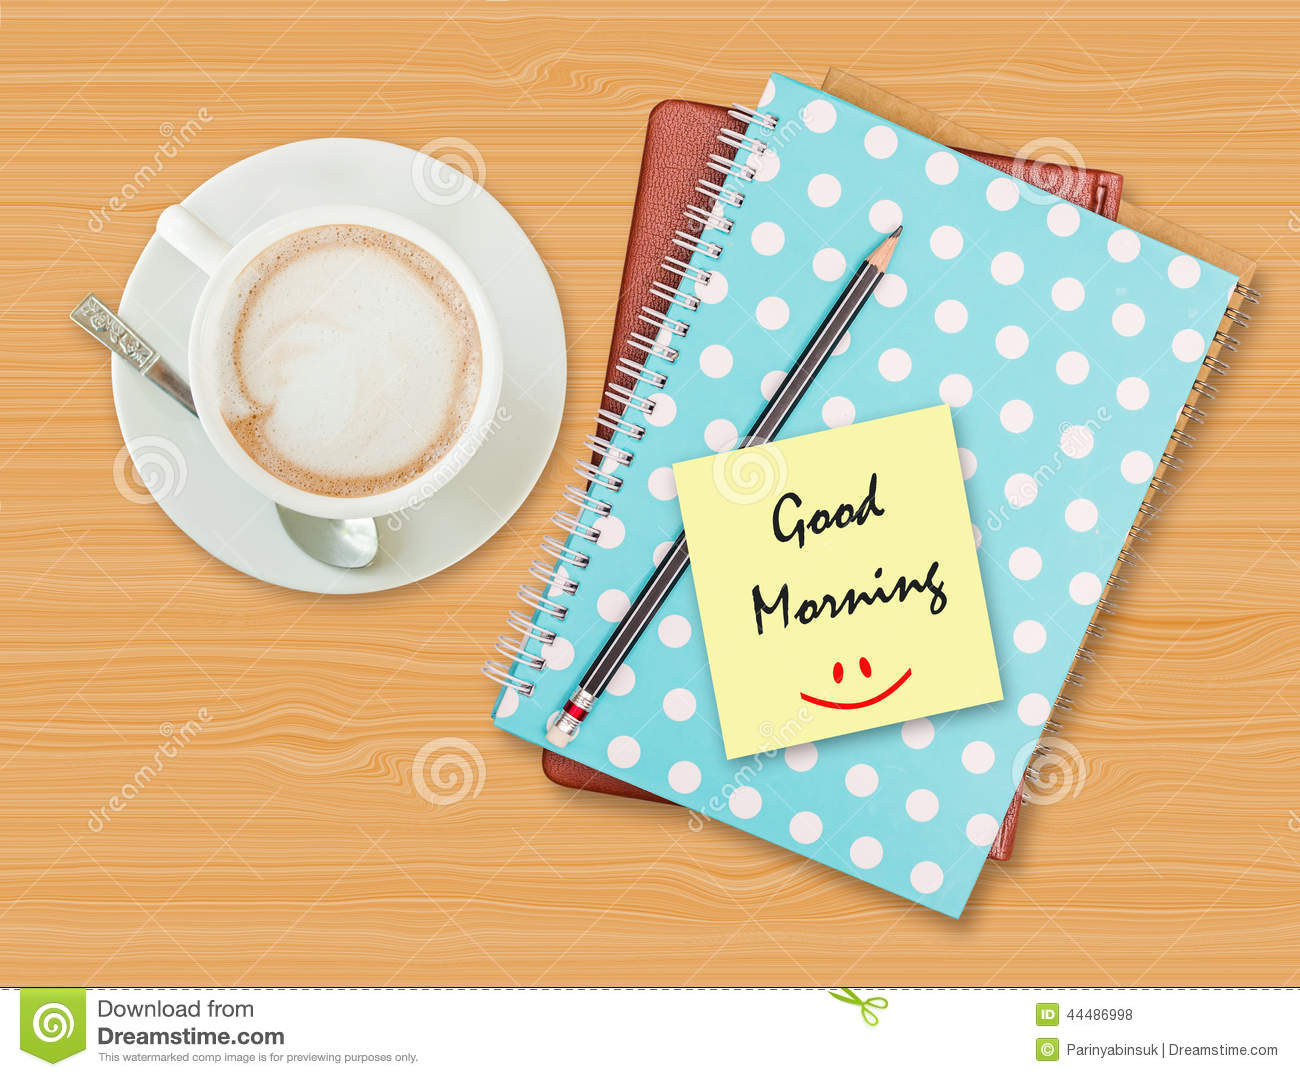 Good Morning And Smile On Blank Paper With Coffee Cup Stock Photo